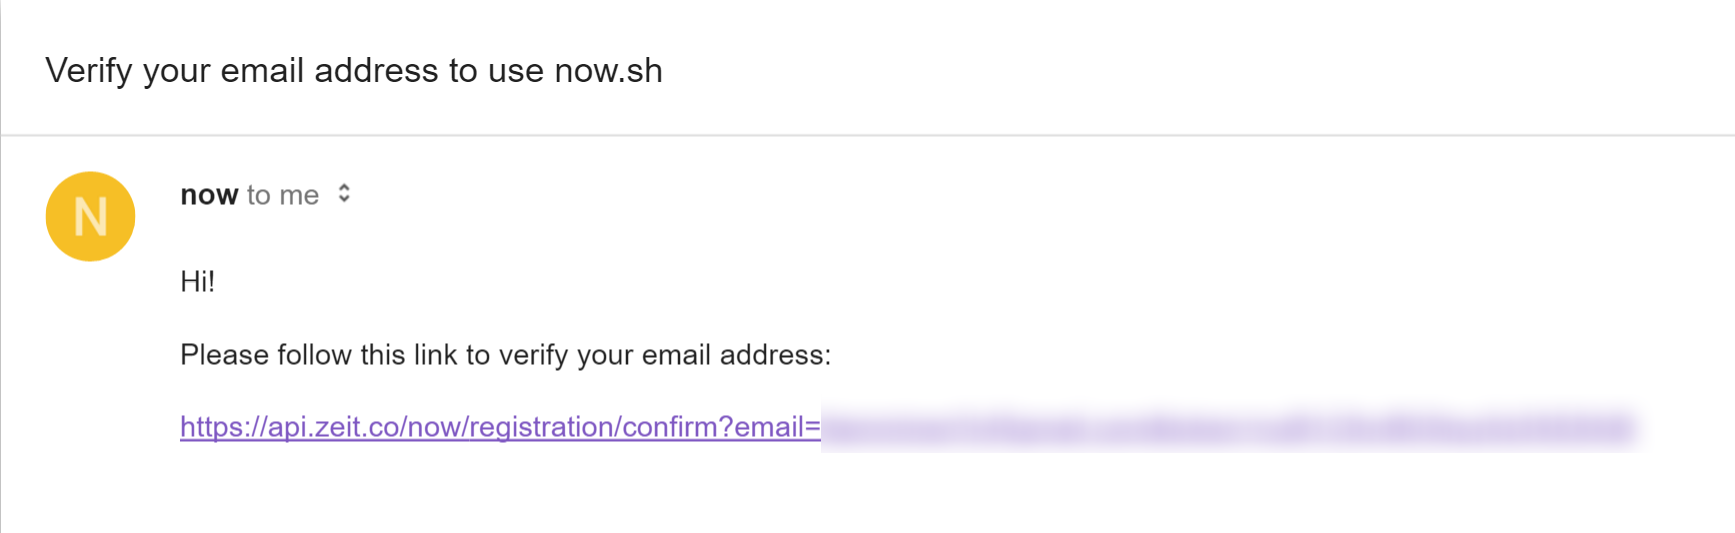 zeit - now: verification email